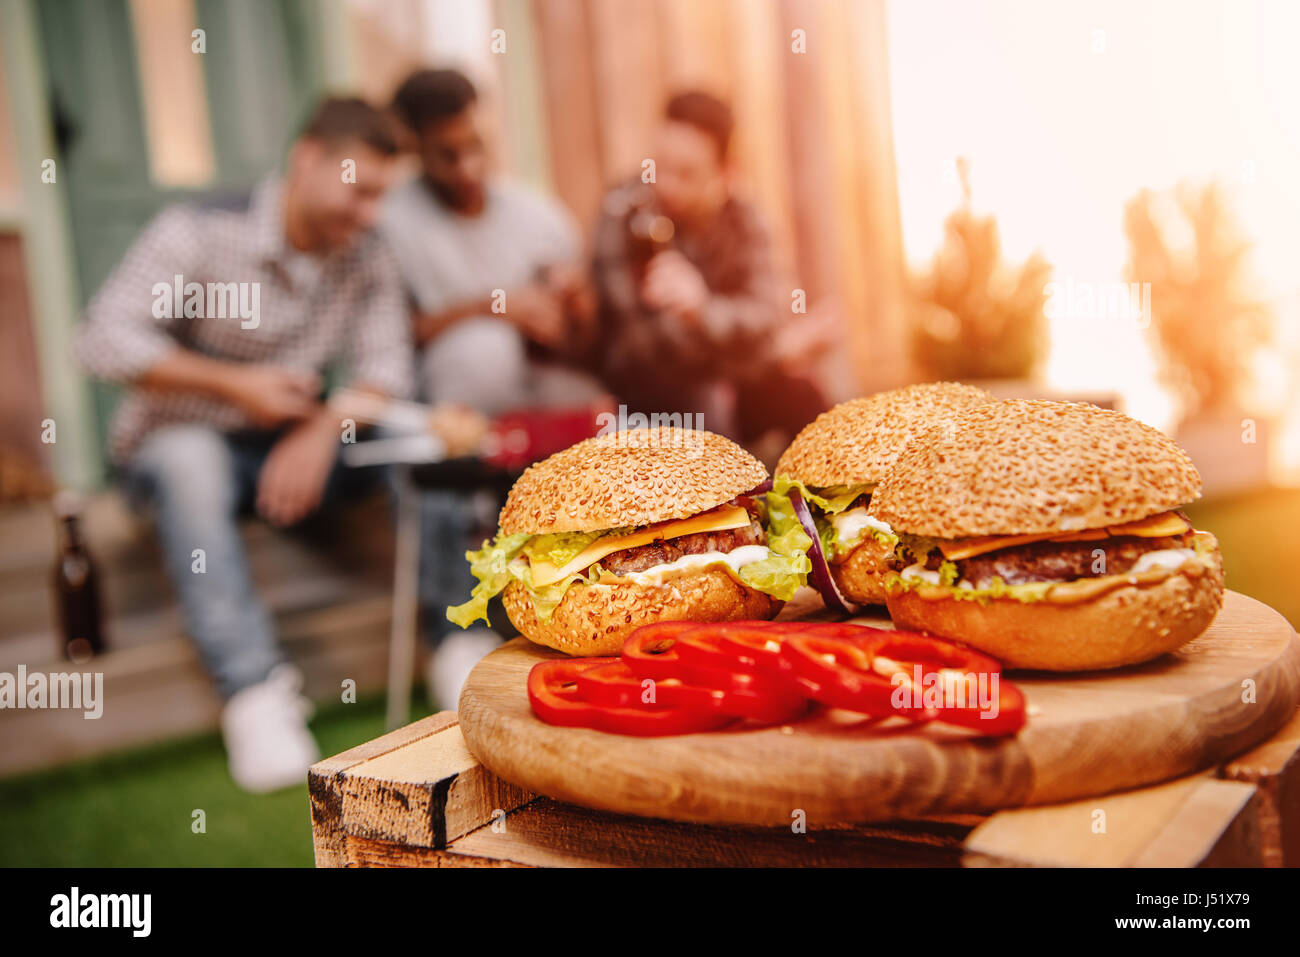 Close-up view of fresh tasty homemade hamburgers on wooden cutting board - Stock Image